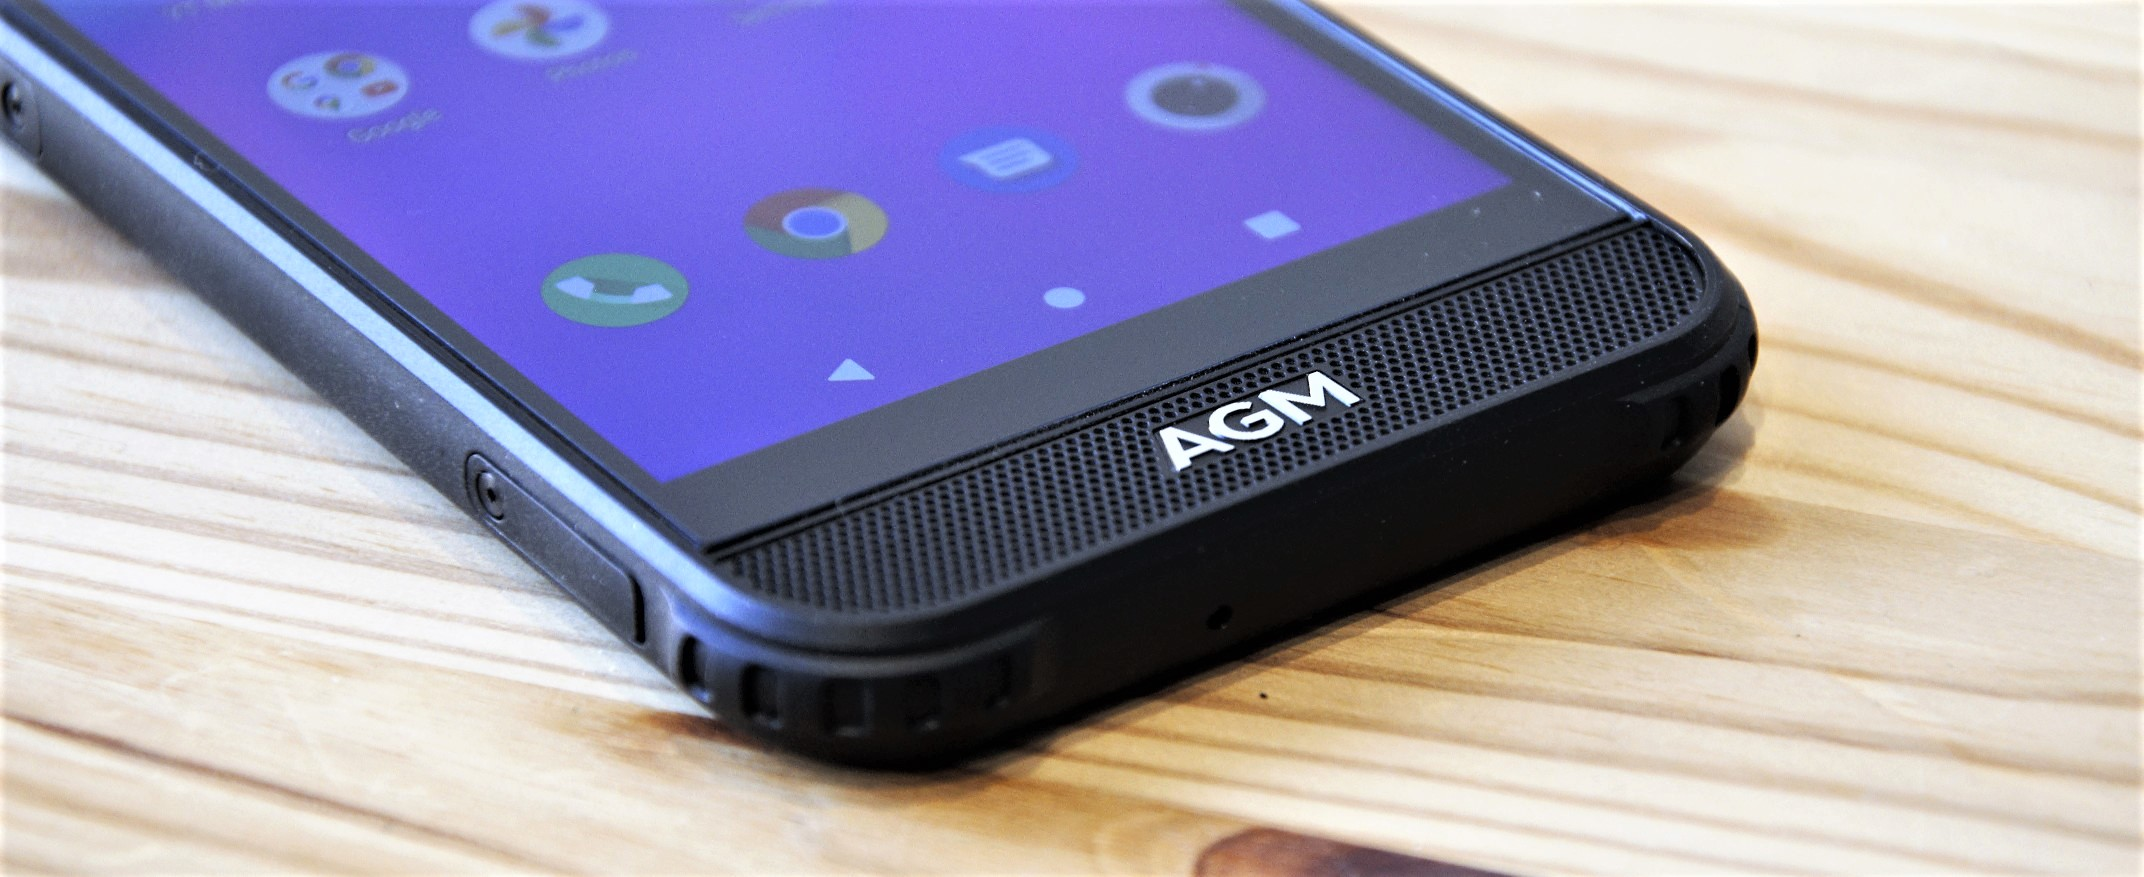 Agm A10 Rugged Smartphone Review